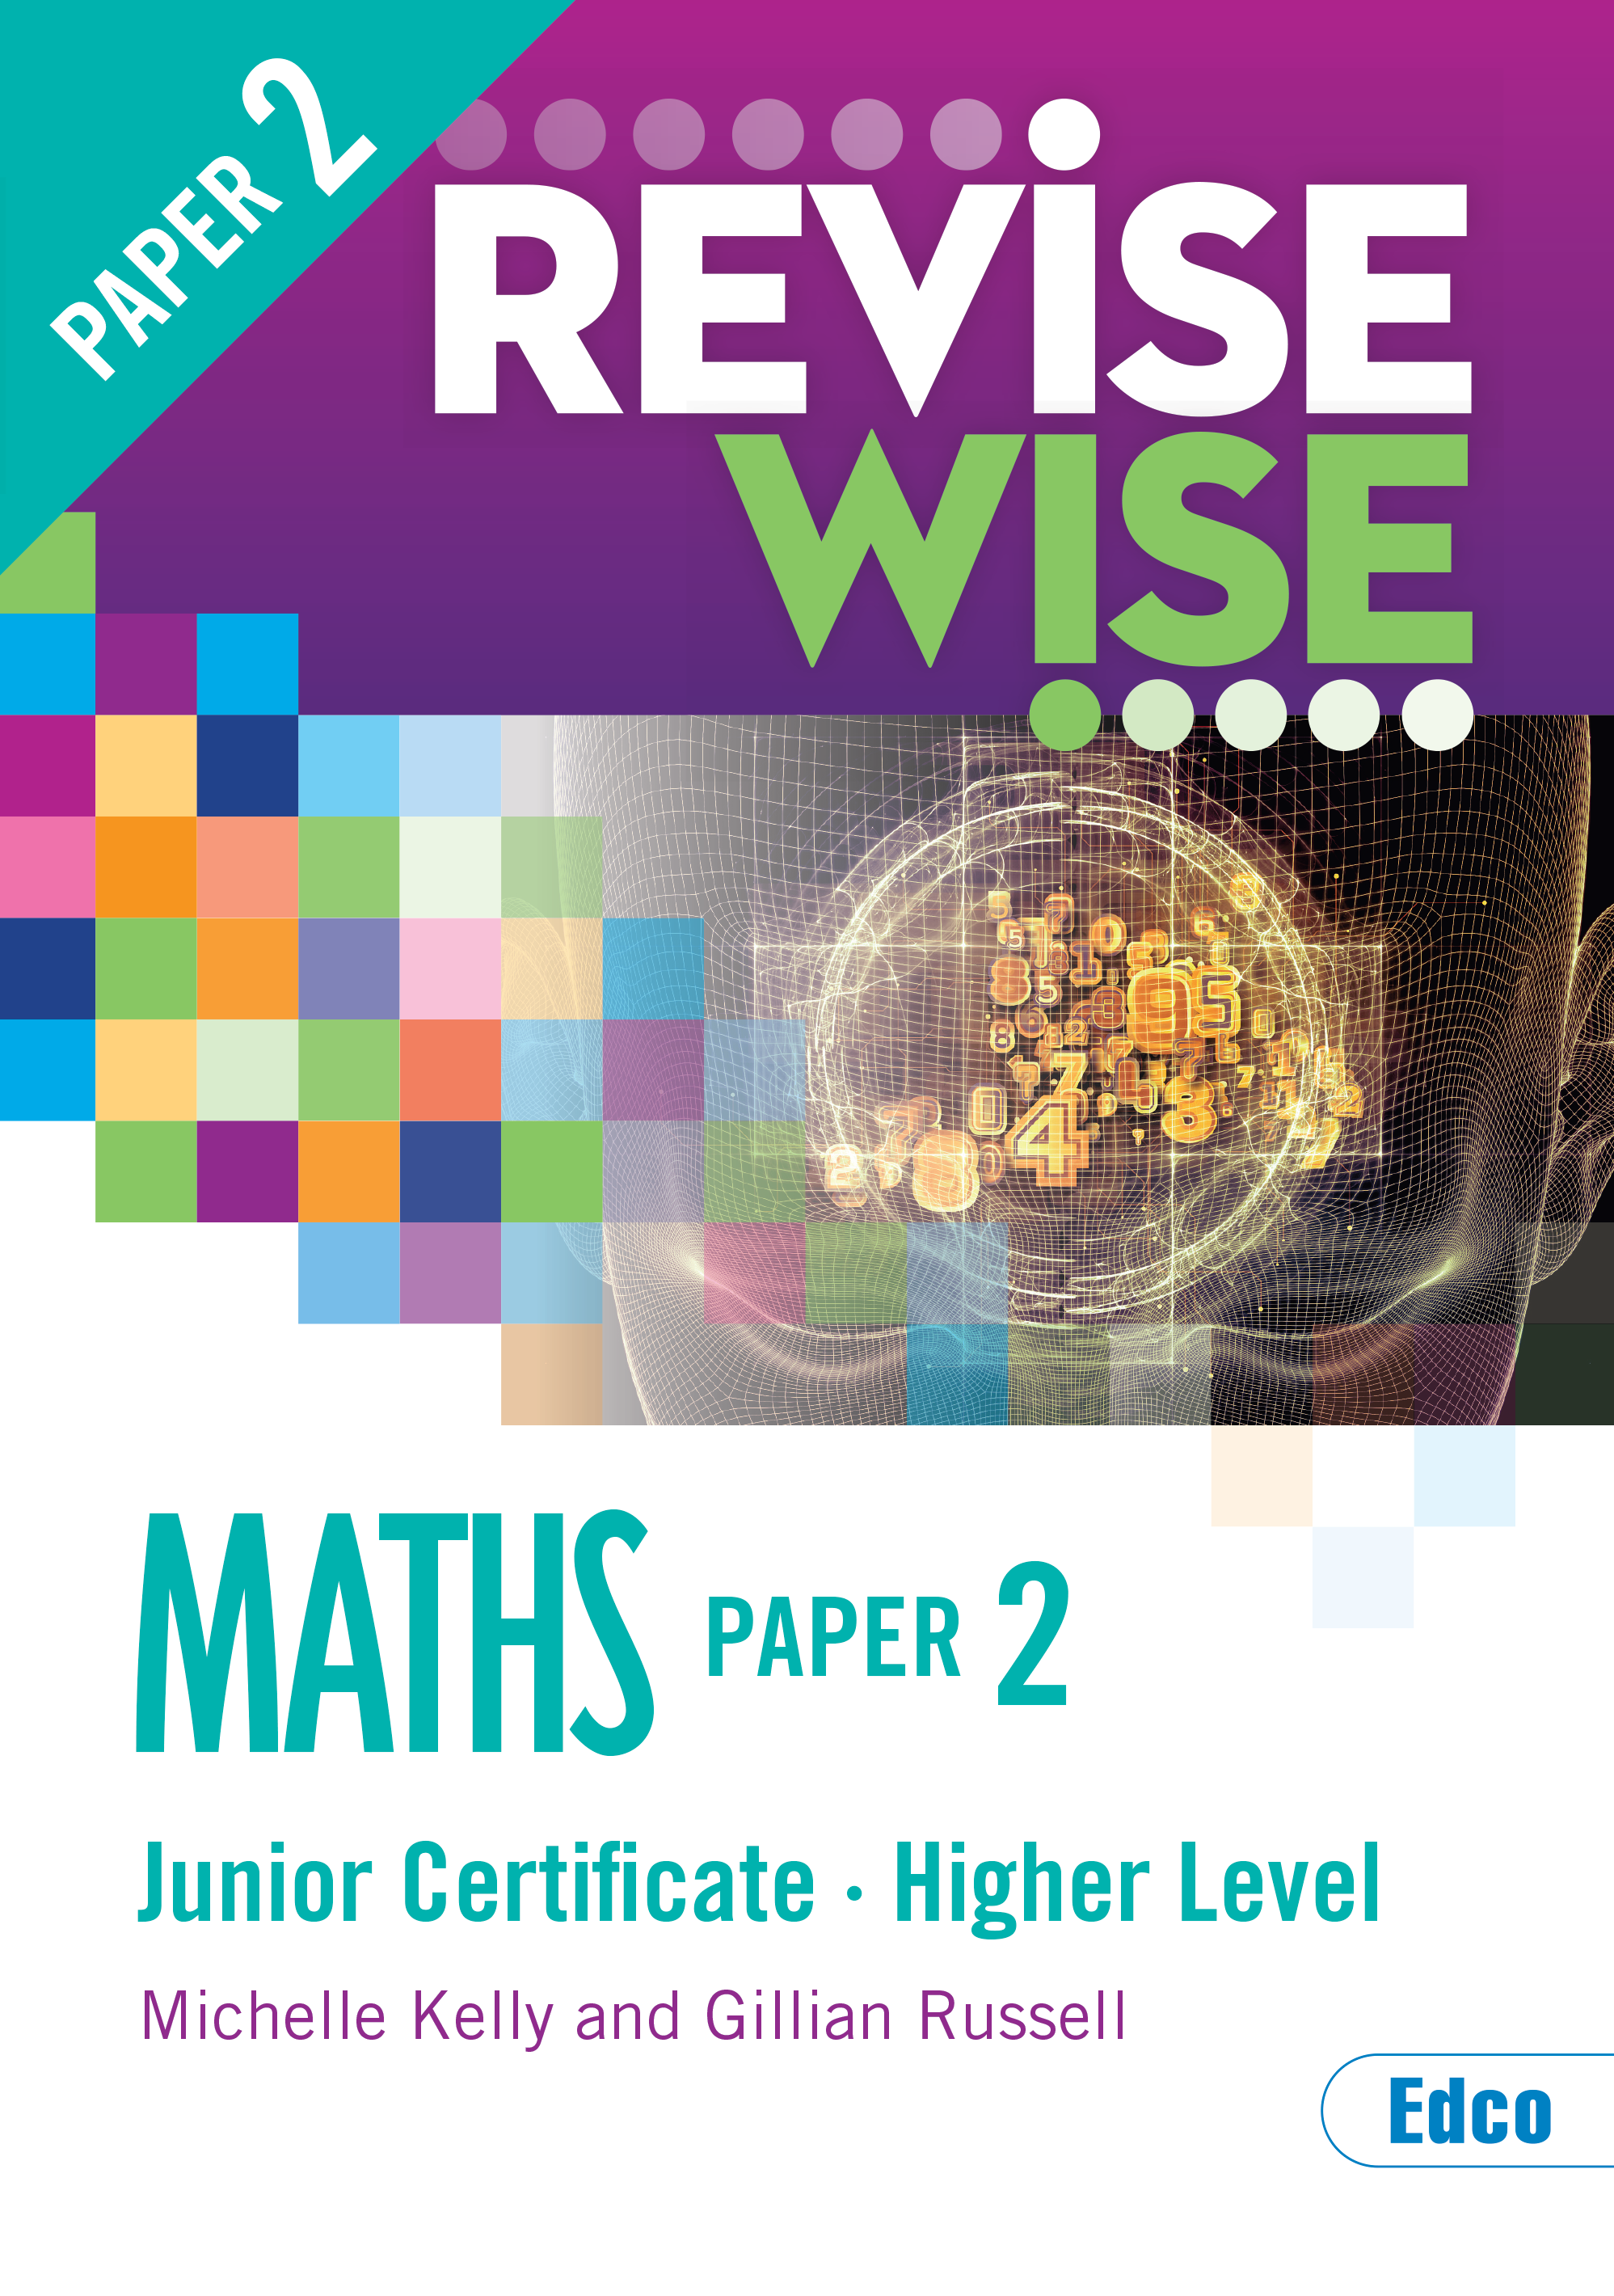 Maths jc hl paper 2 revise wise revise wise jc 16 maths paper 2 hl 11 spinepdf yadclub Choice Image